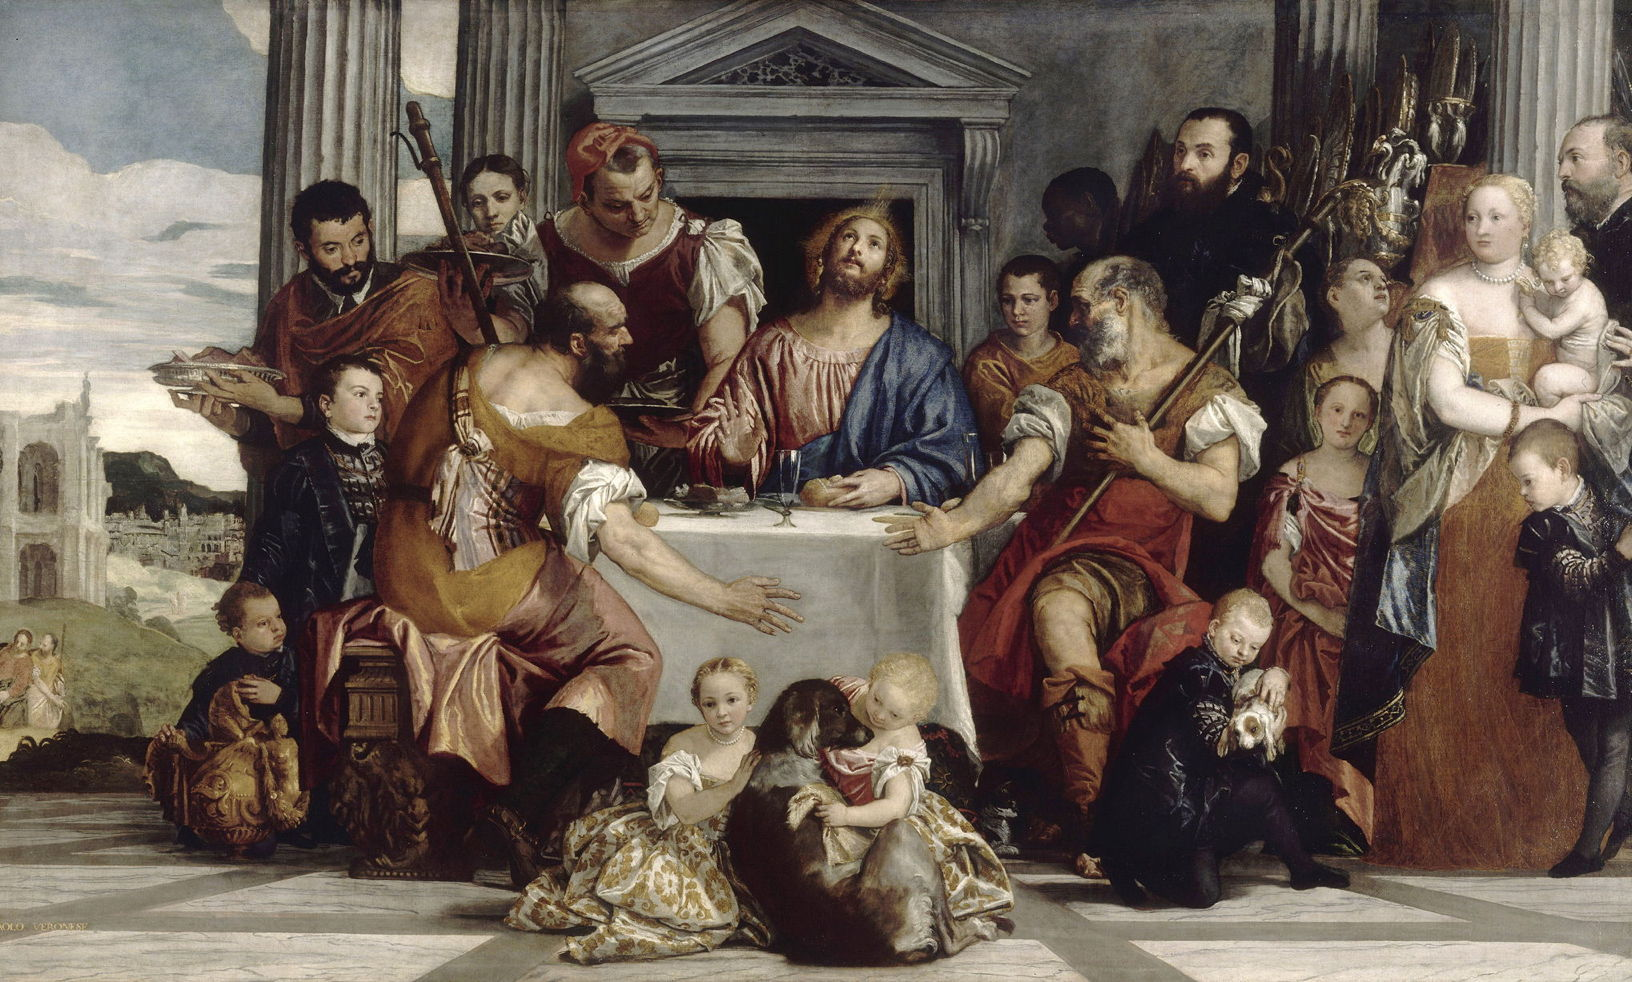 Paolo Veronese 15281588 The Supper at Emmaus c 1559